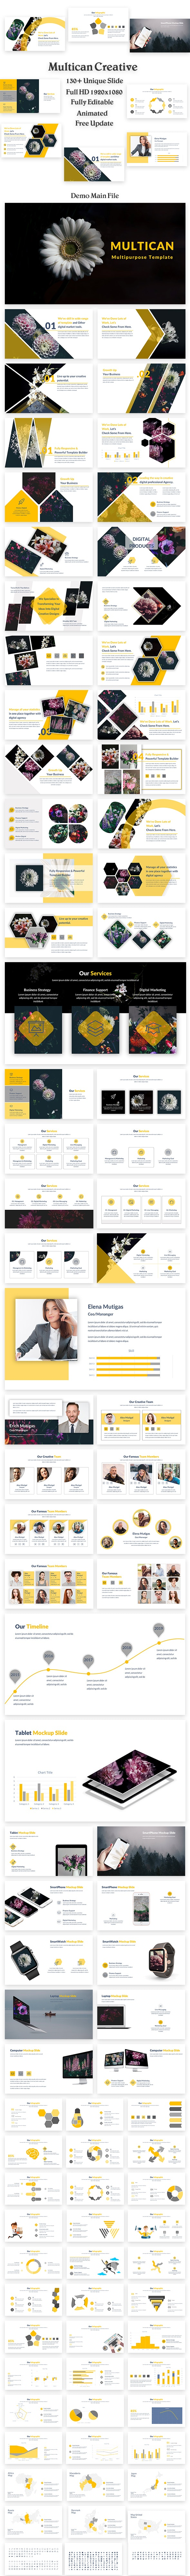 Multican Creative Google Slide Template - Google Slides Presentation Templates